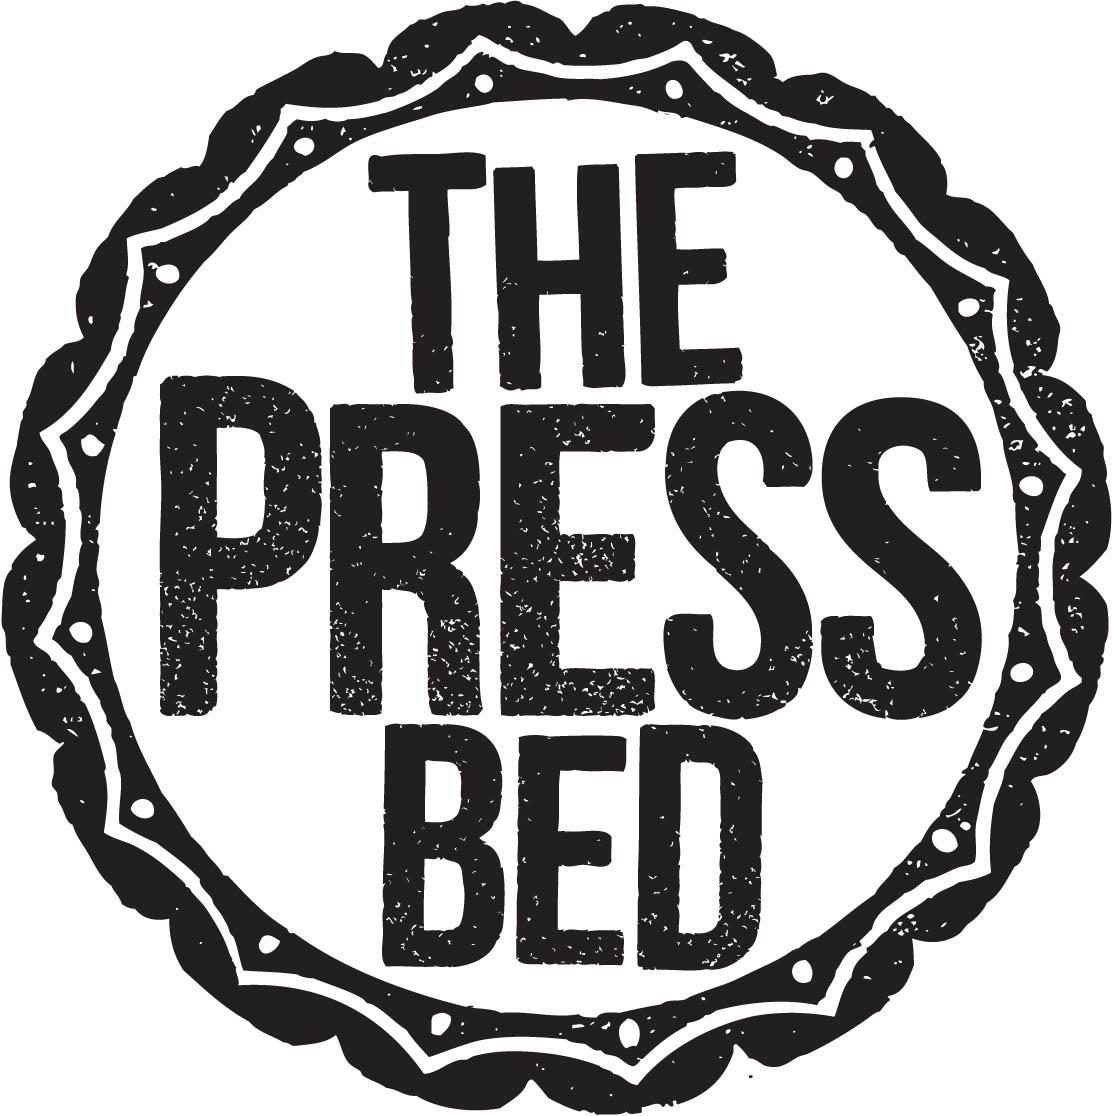 The Press Bed | T-Shirts - image 2 - student project